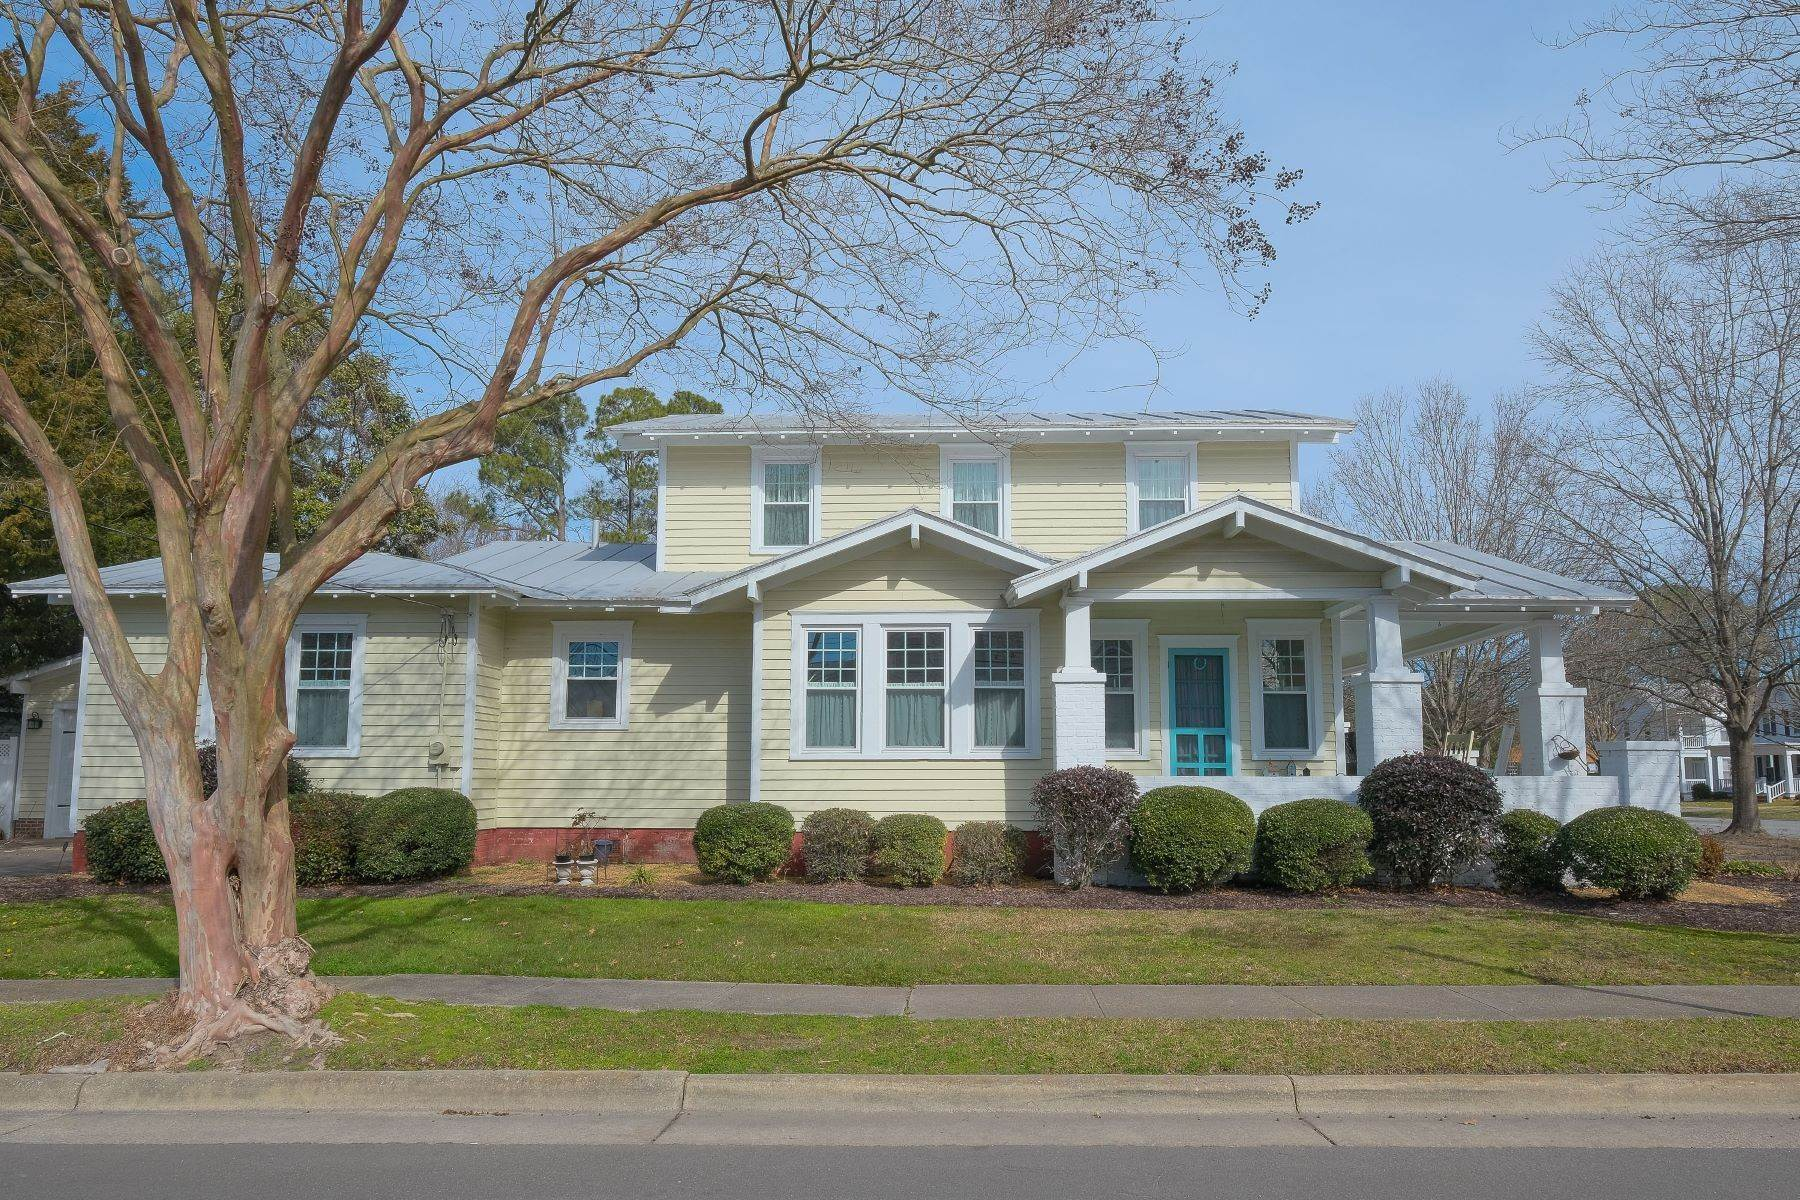 Single Family Homes for Sale at BROAD STREET BUNGALOW 401 N Broad St Edenton, North Carolina 27932 United States